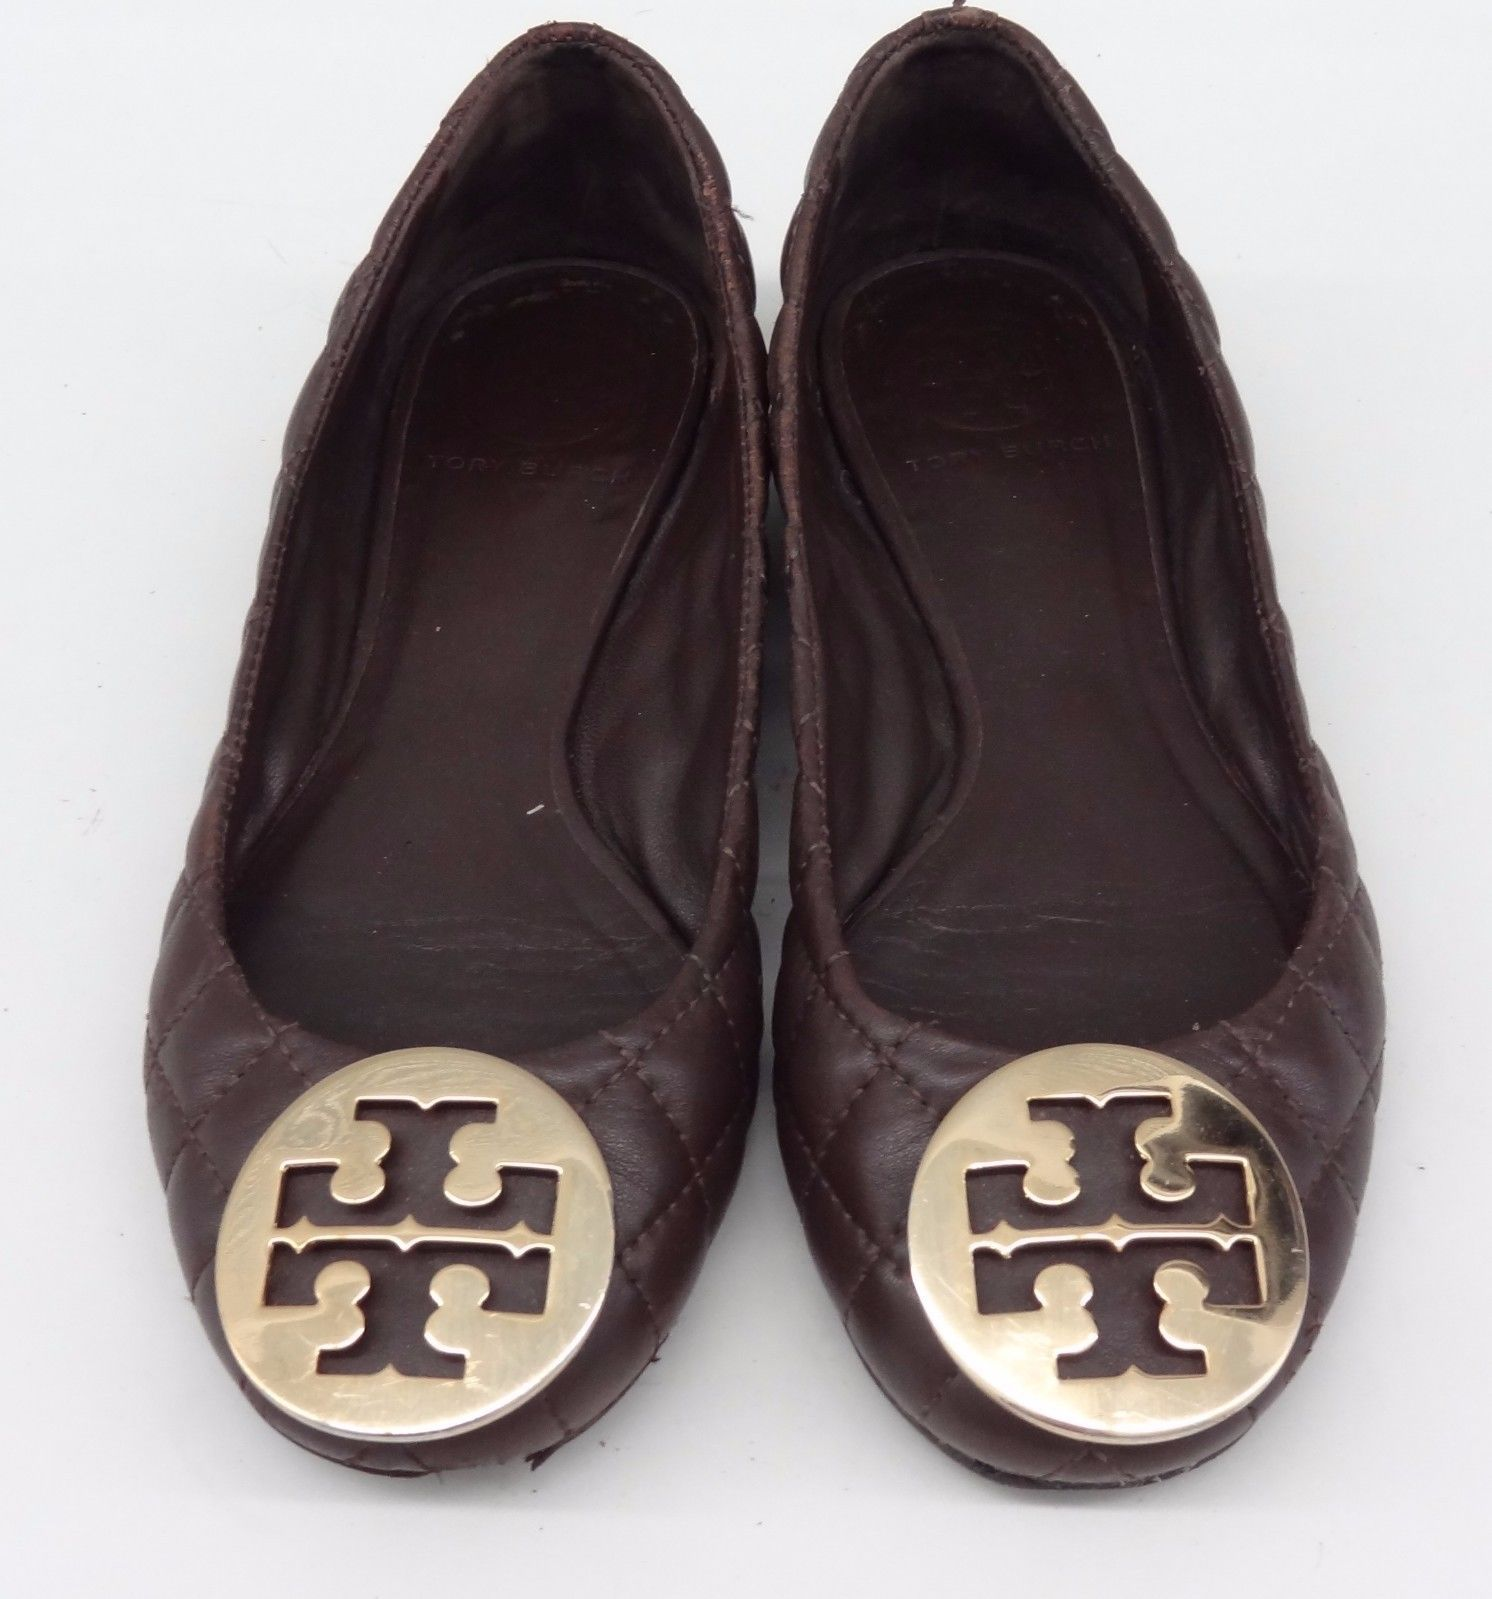 85f1a4f76  225 TORY BURCH Reva Ballet Flats Shoes Brown quilted Leather Gold Logo  Size 5